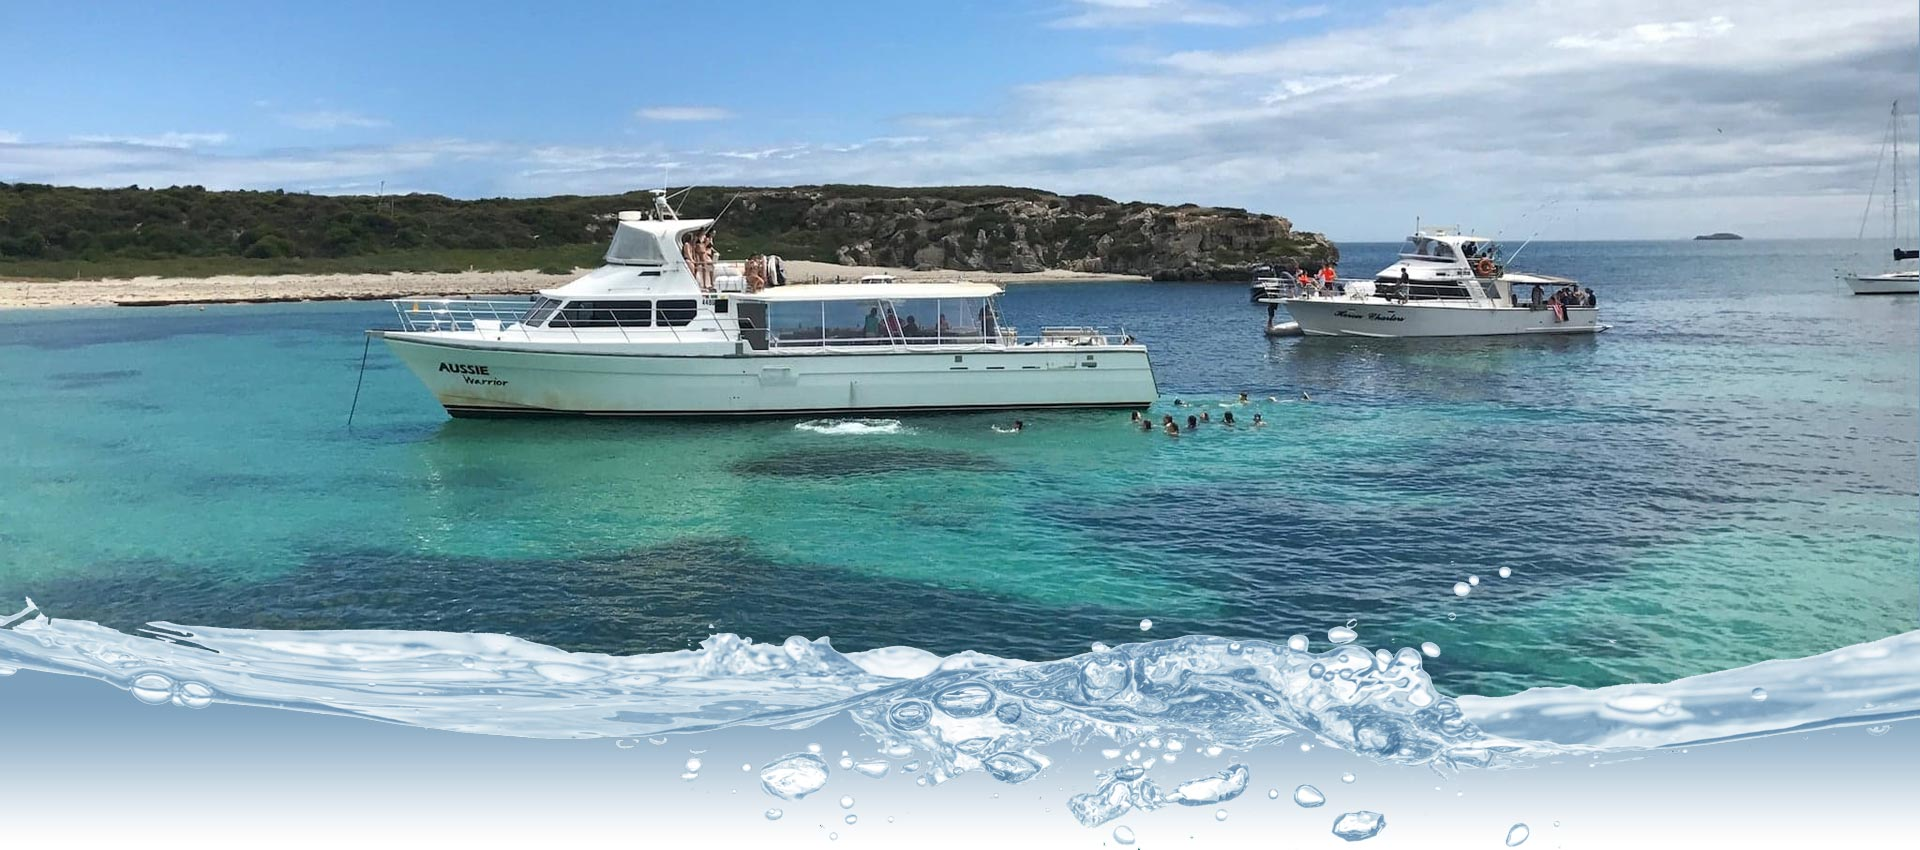 whats included on an abrolhos island charters